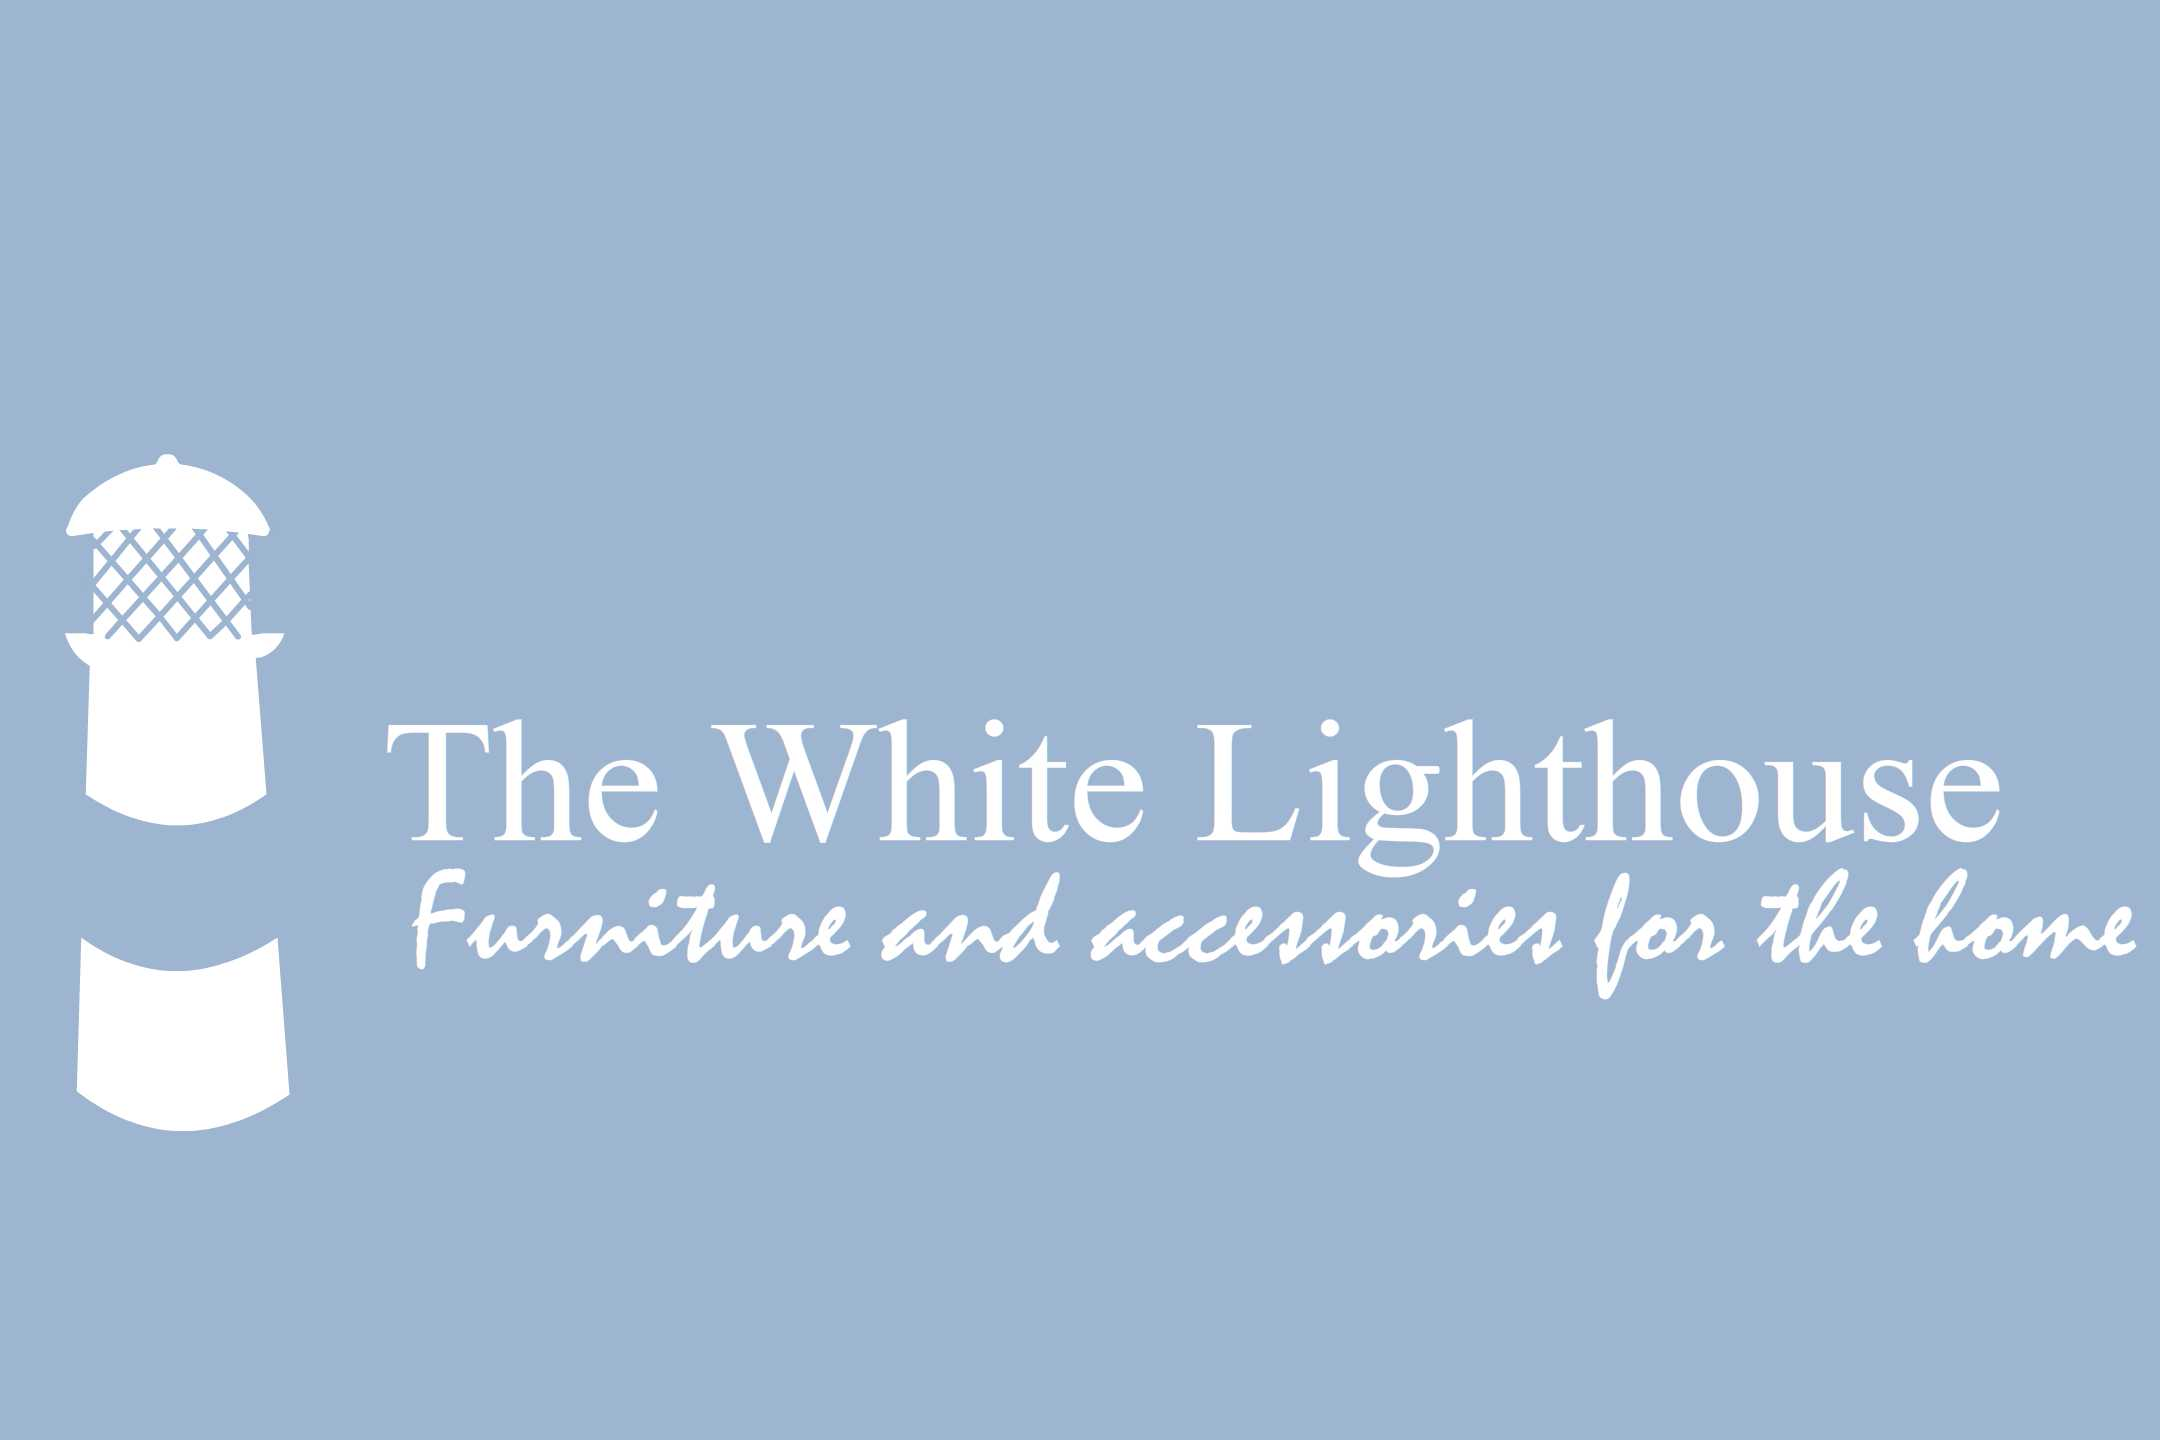 The White Lighthouse Furniture